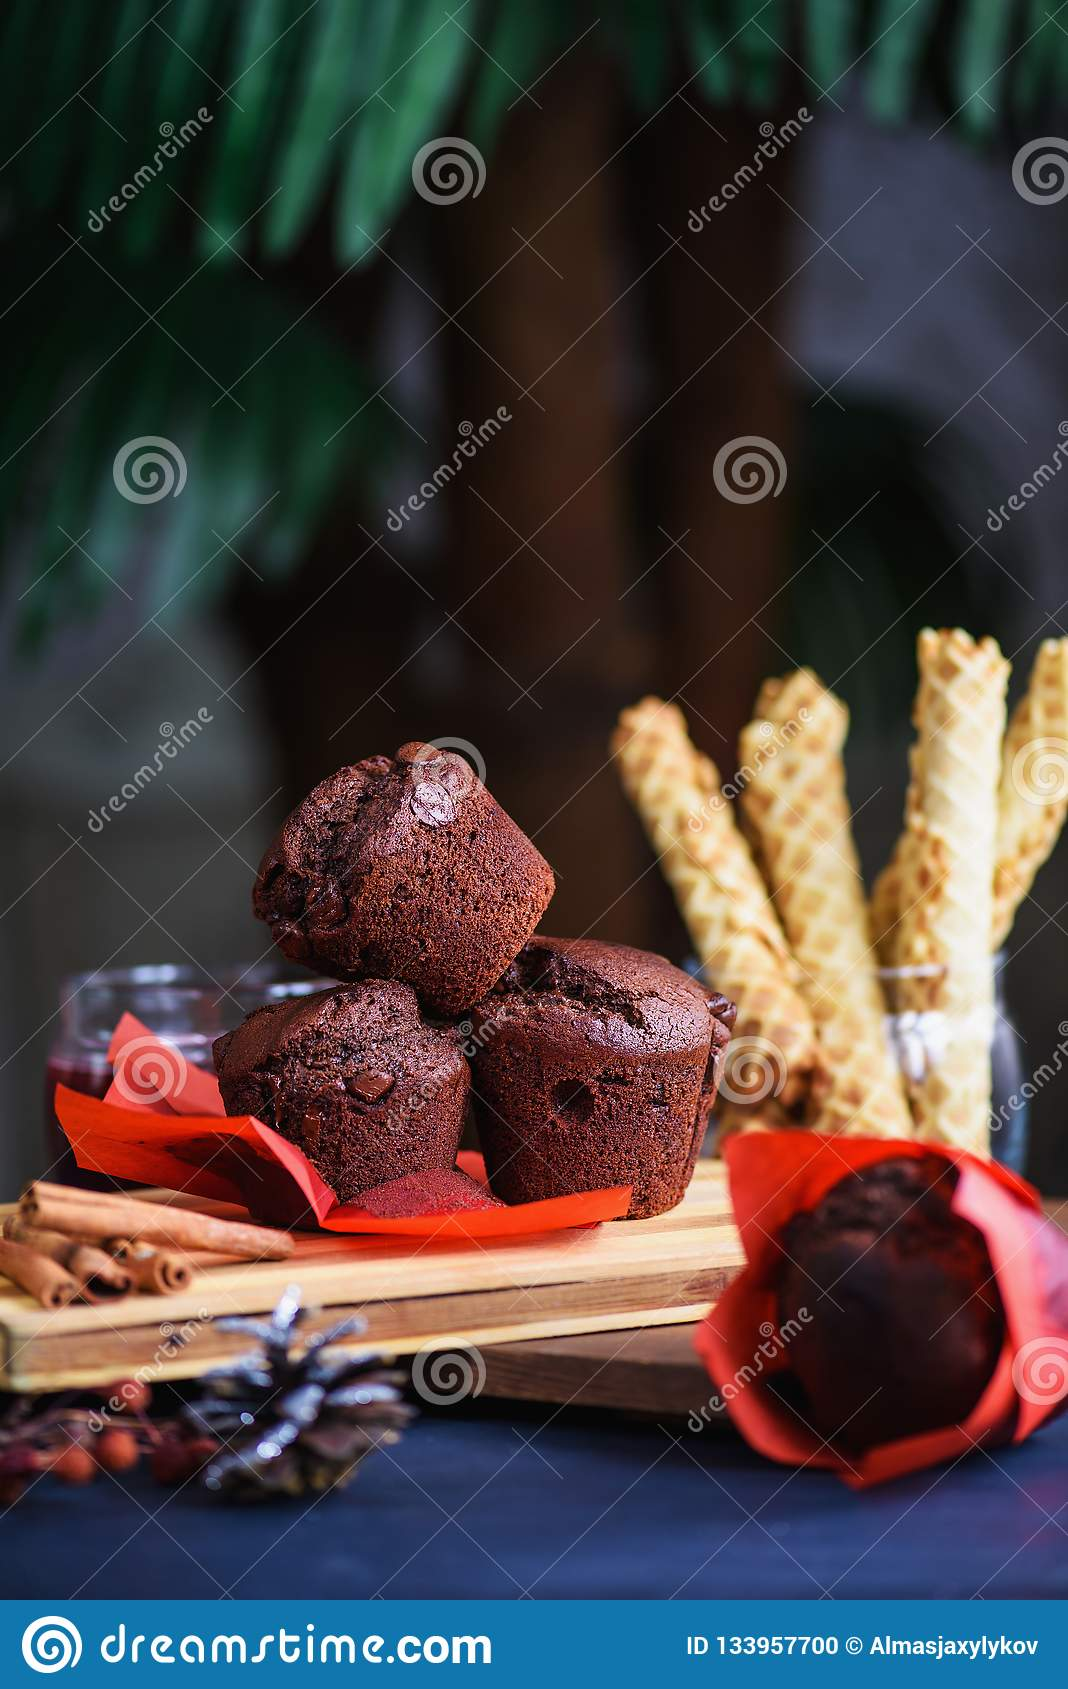 Homemade muffins with chocolate